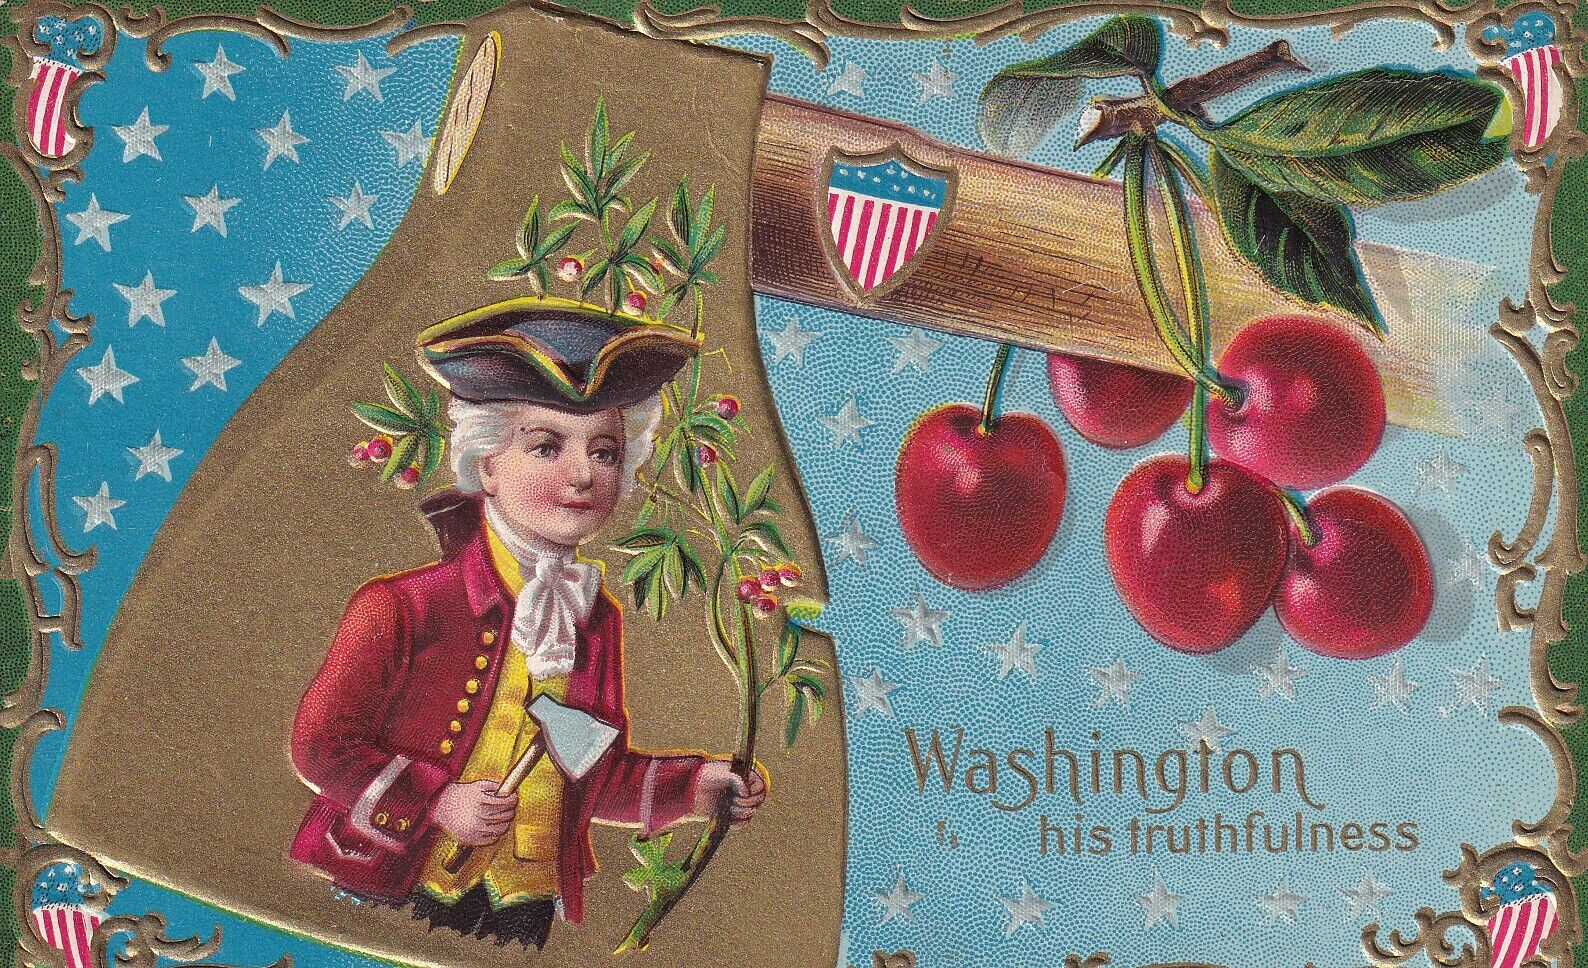 AS: Young Washington with cherry branch & ax, Gold detail, 1900-10s, WINSCH